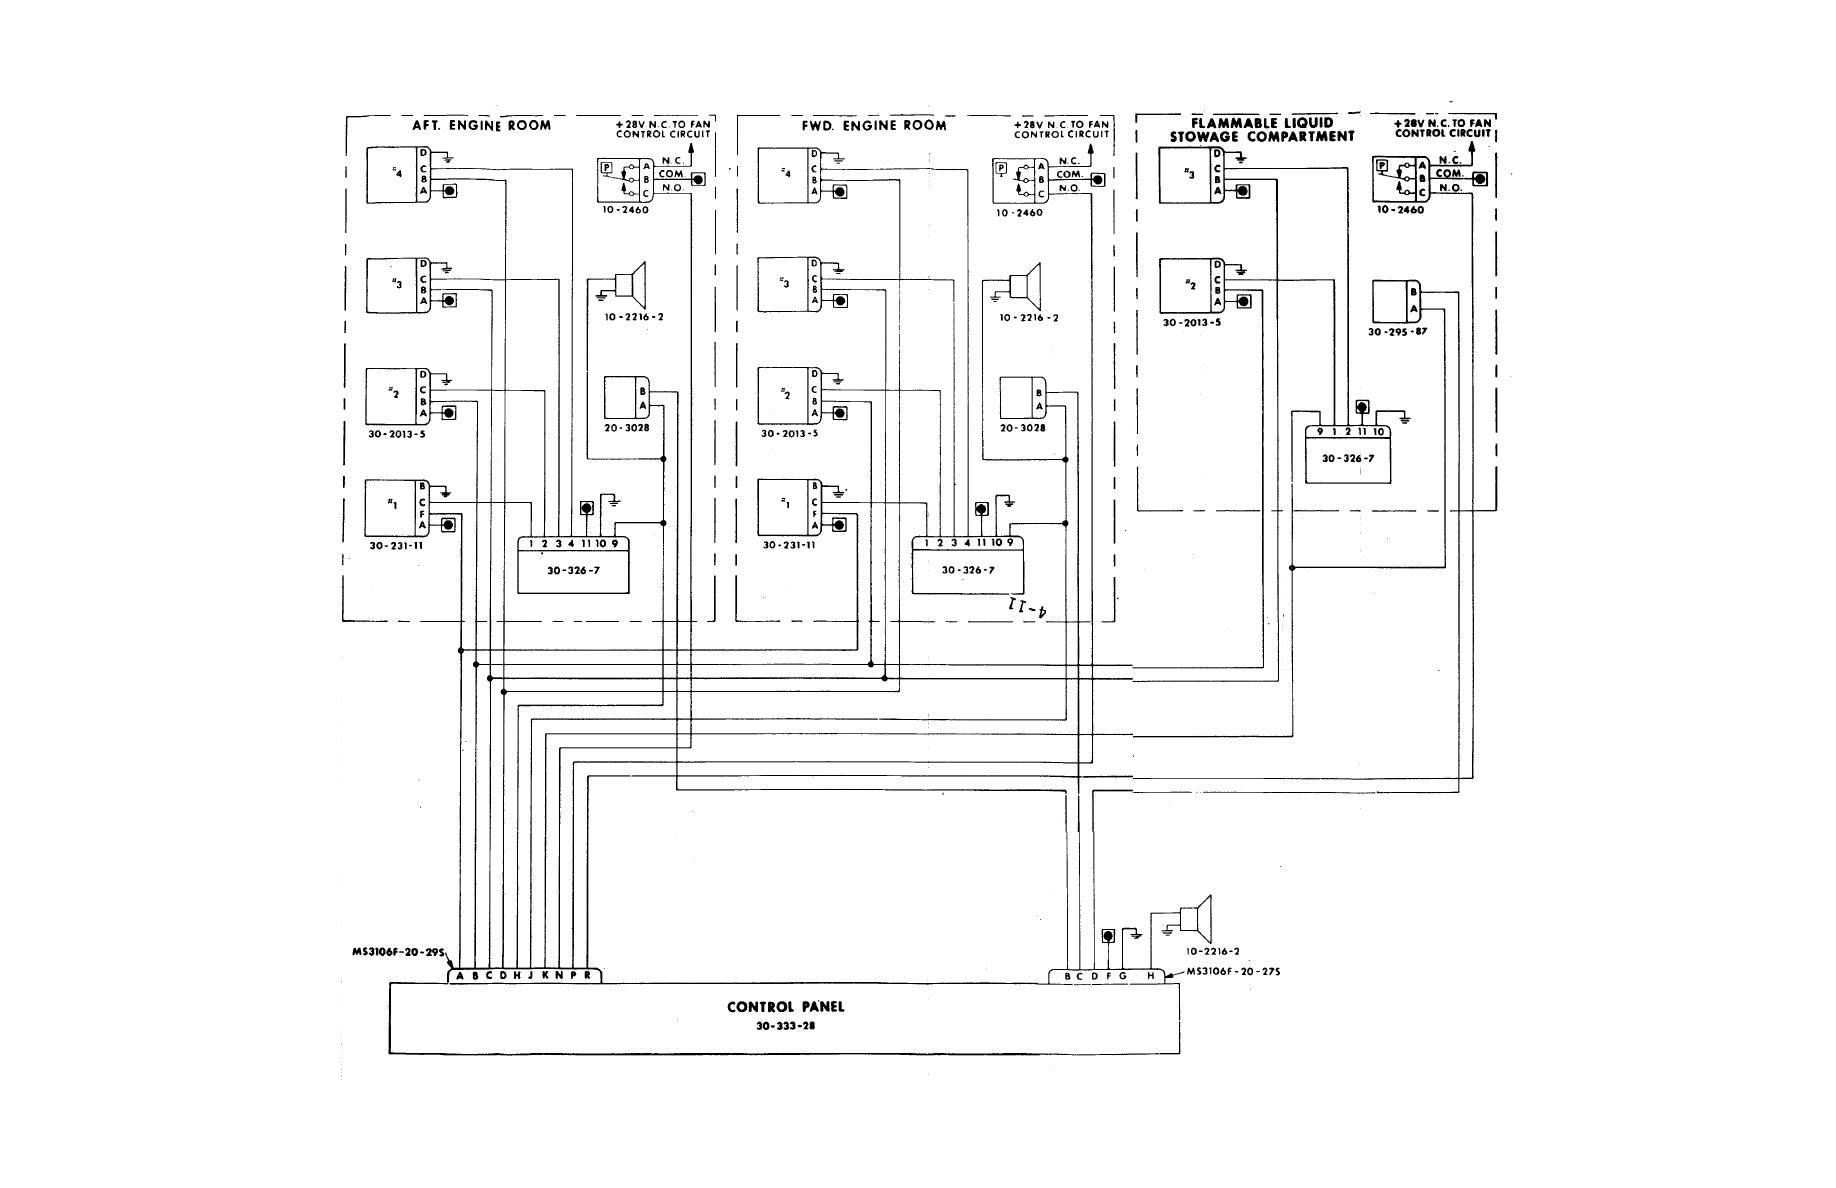 Fire Alarm System Wiring Diagrams Images